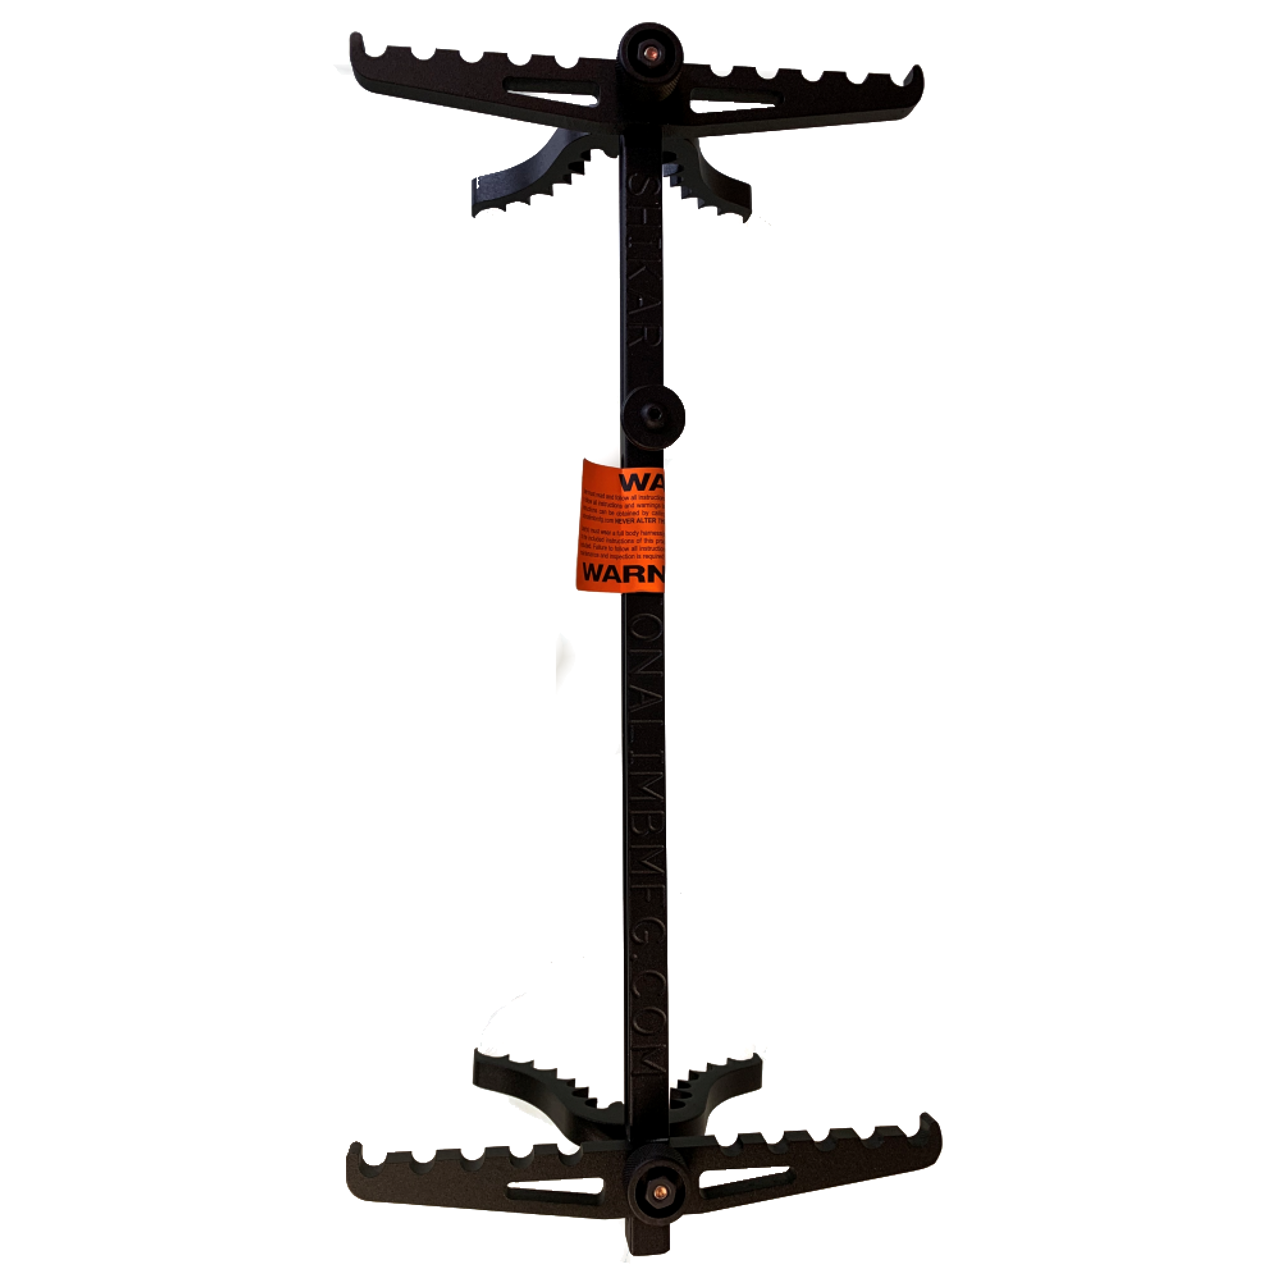 The Shikar Lightweight Climbing Sticks Saddle Hunting Gear